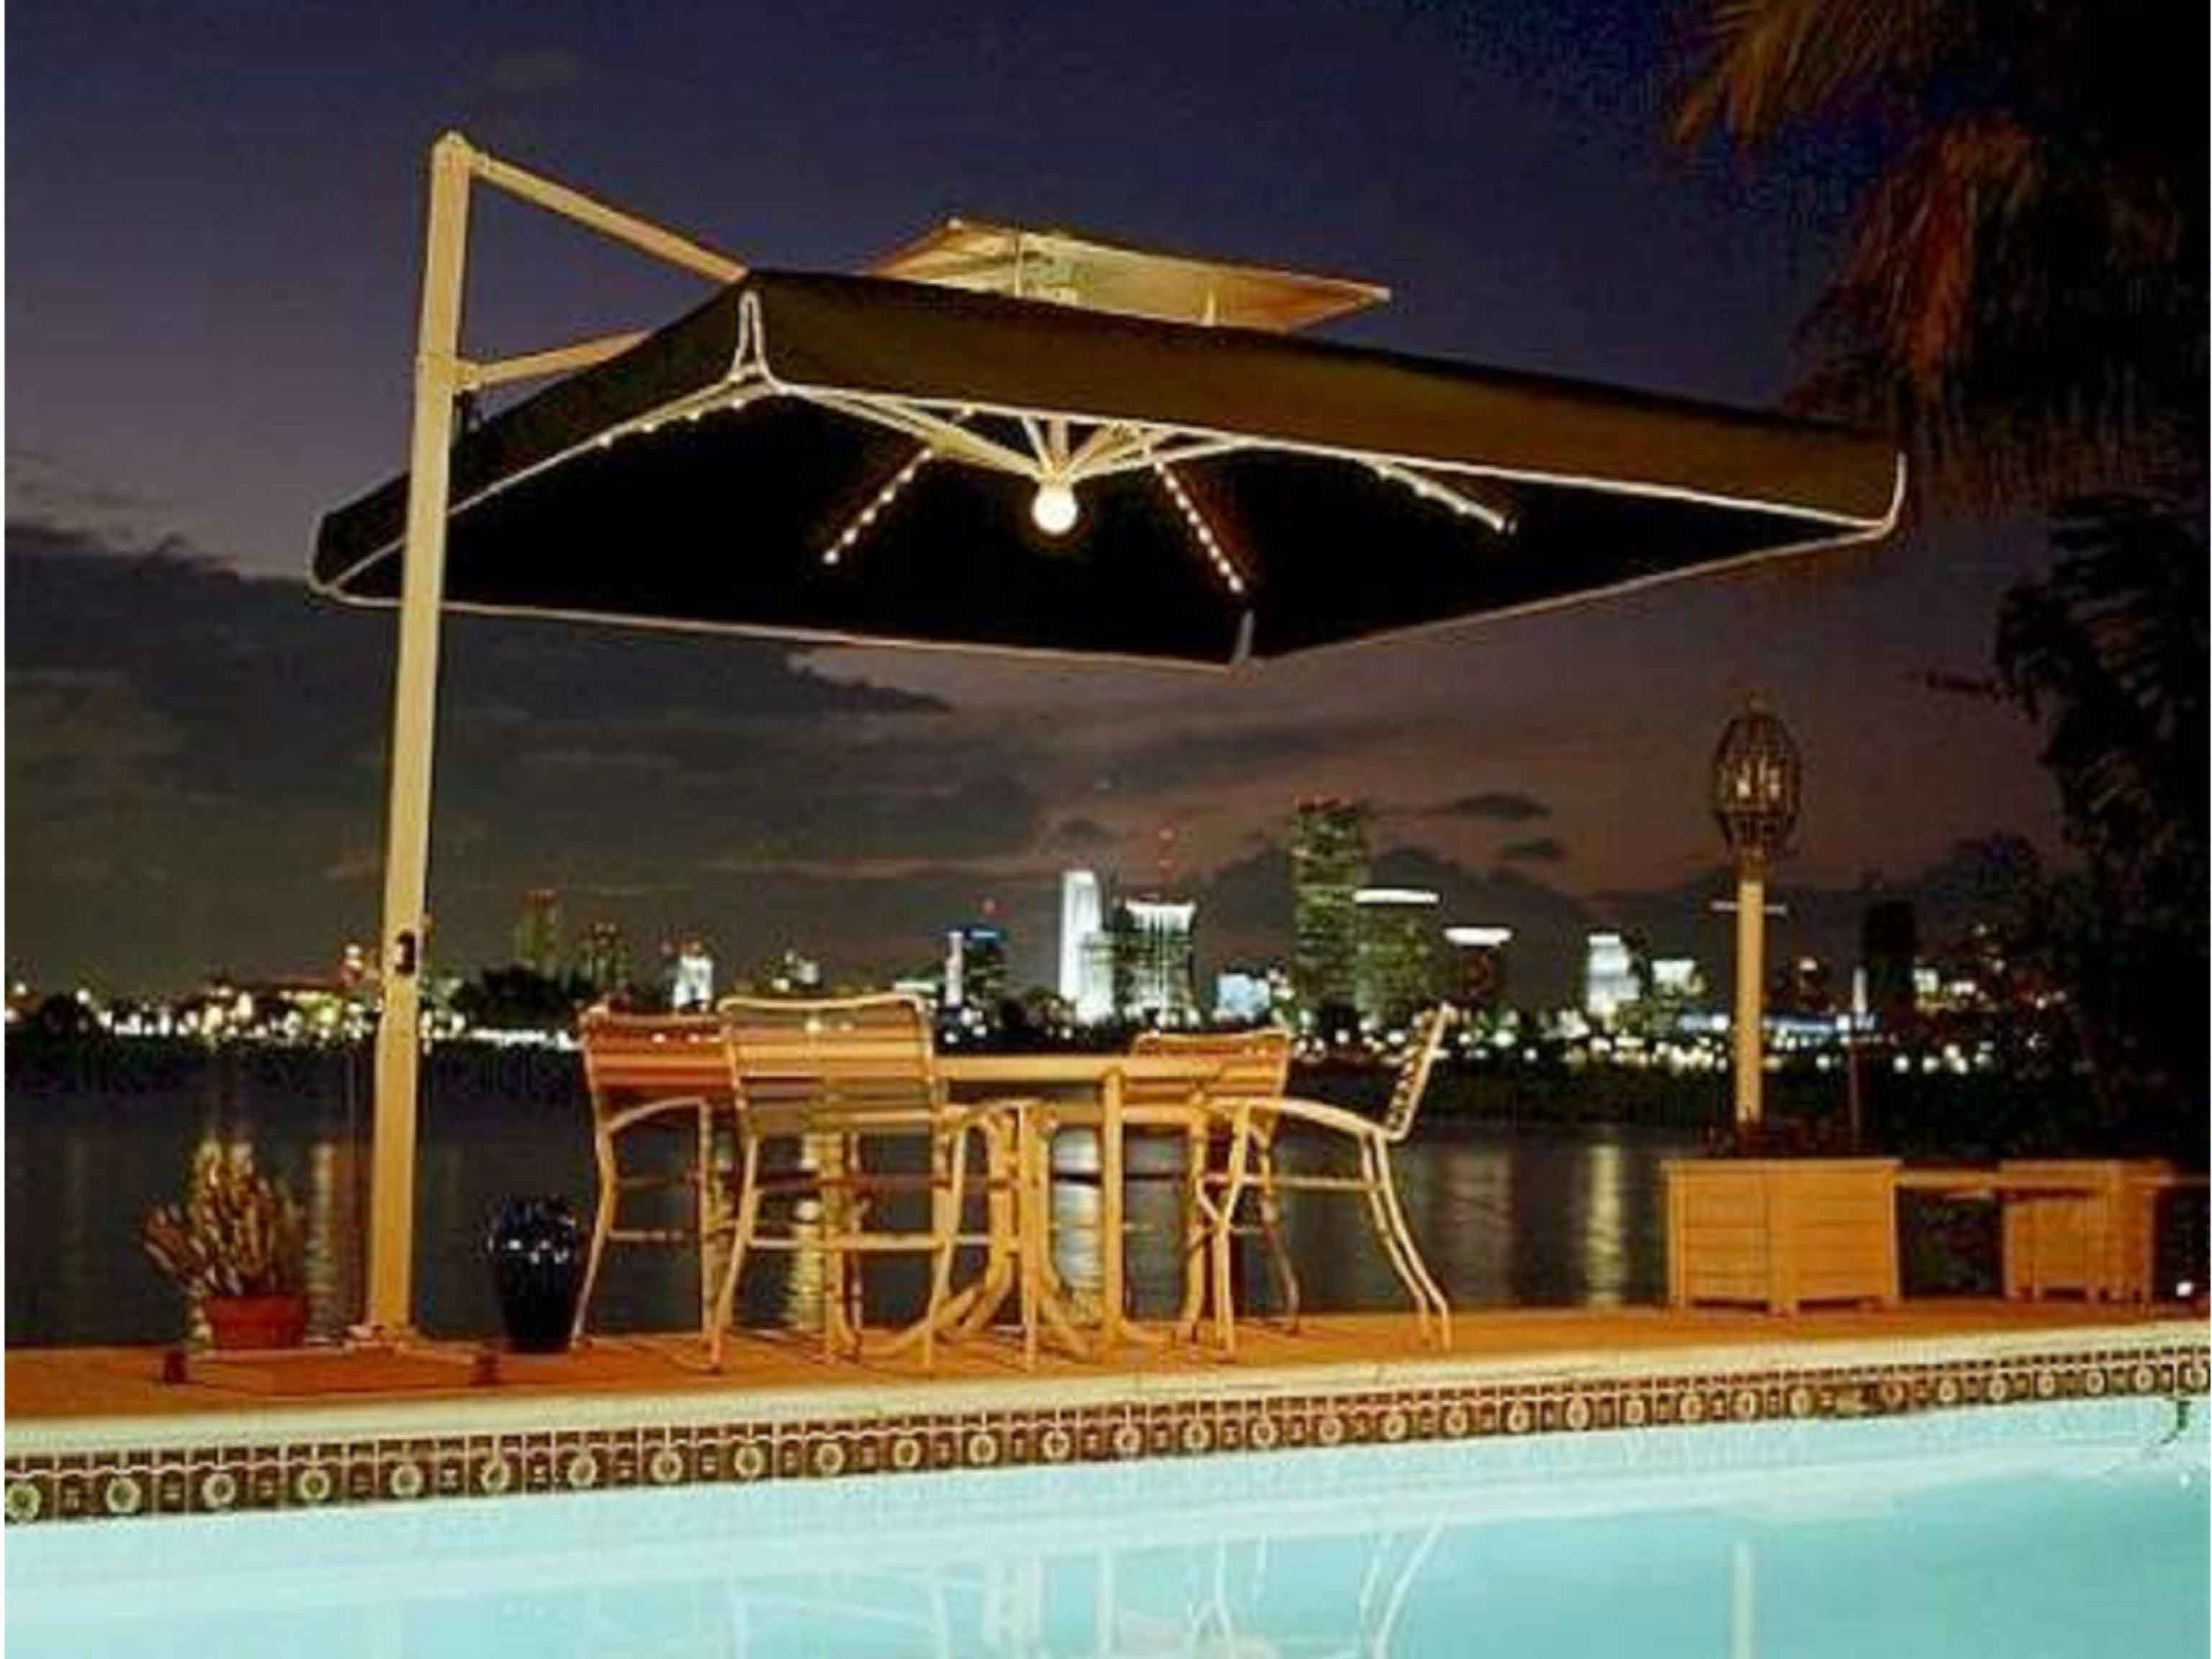 Famous Patio Umbrellas With Solar Led Lights With Furniture: Patio Umbrellas Home Depot Bedroom Light Bathroom Light (View 17 of 20)